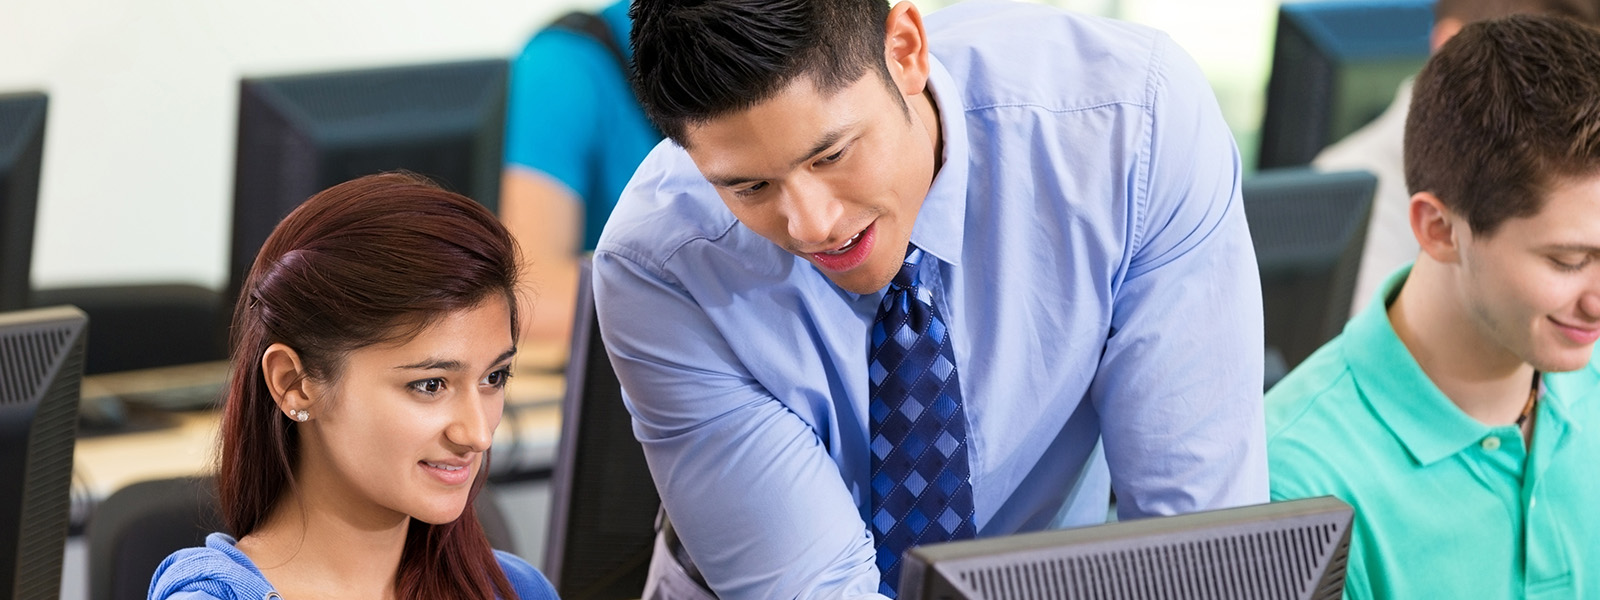 Male teacher standing and pointing at computer screen female student is sitting in front of